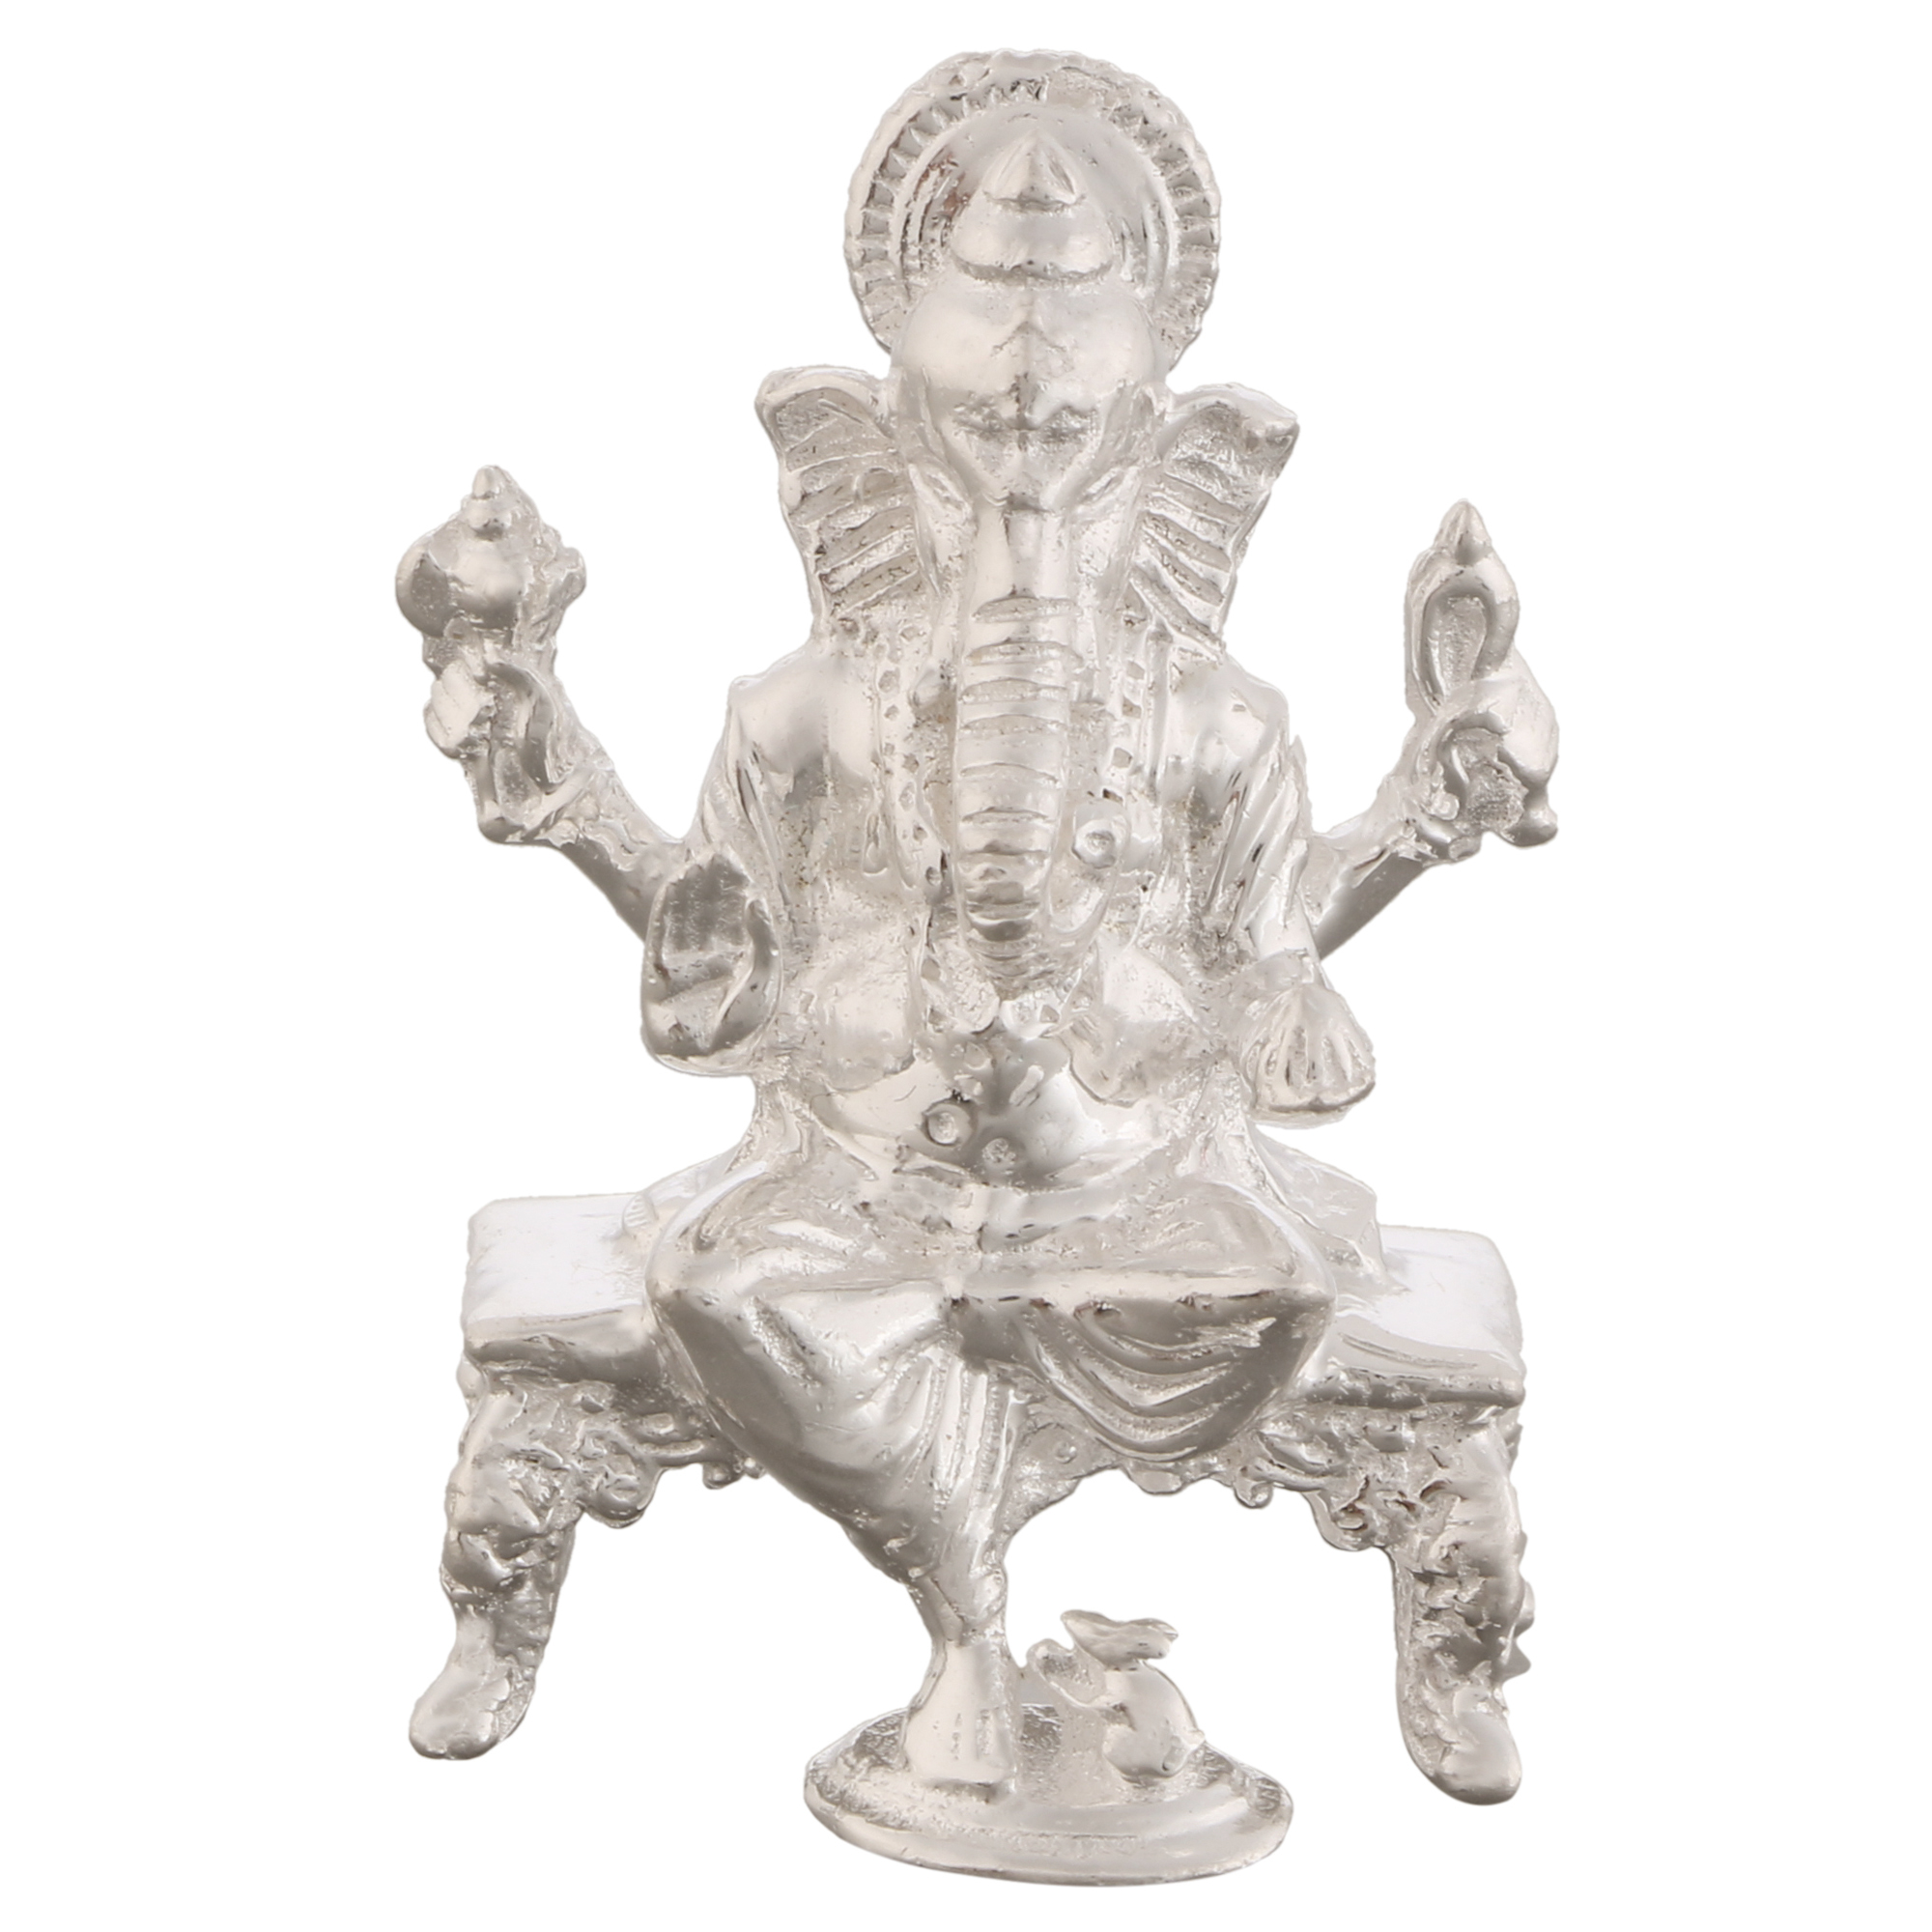 Ganesh ji in Silver by Osasbazaar Main